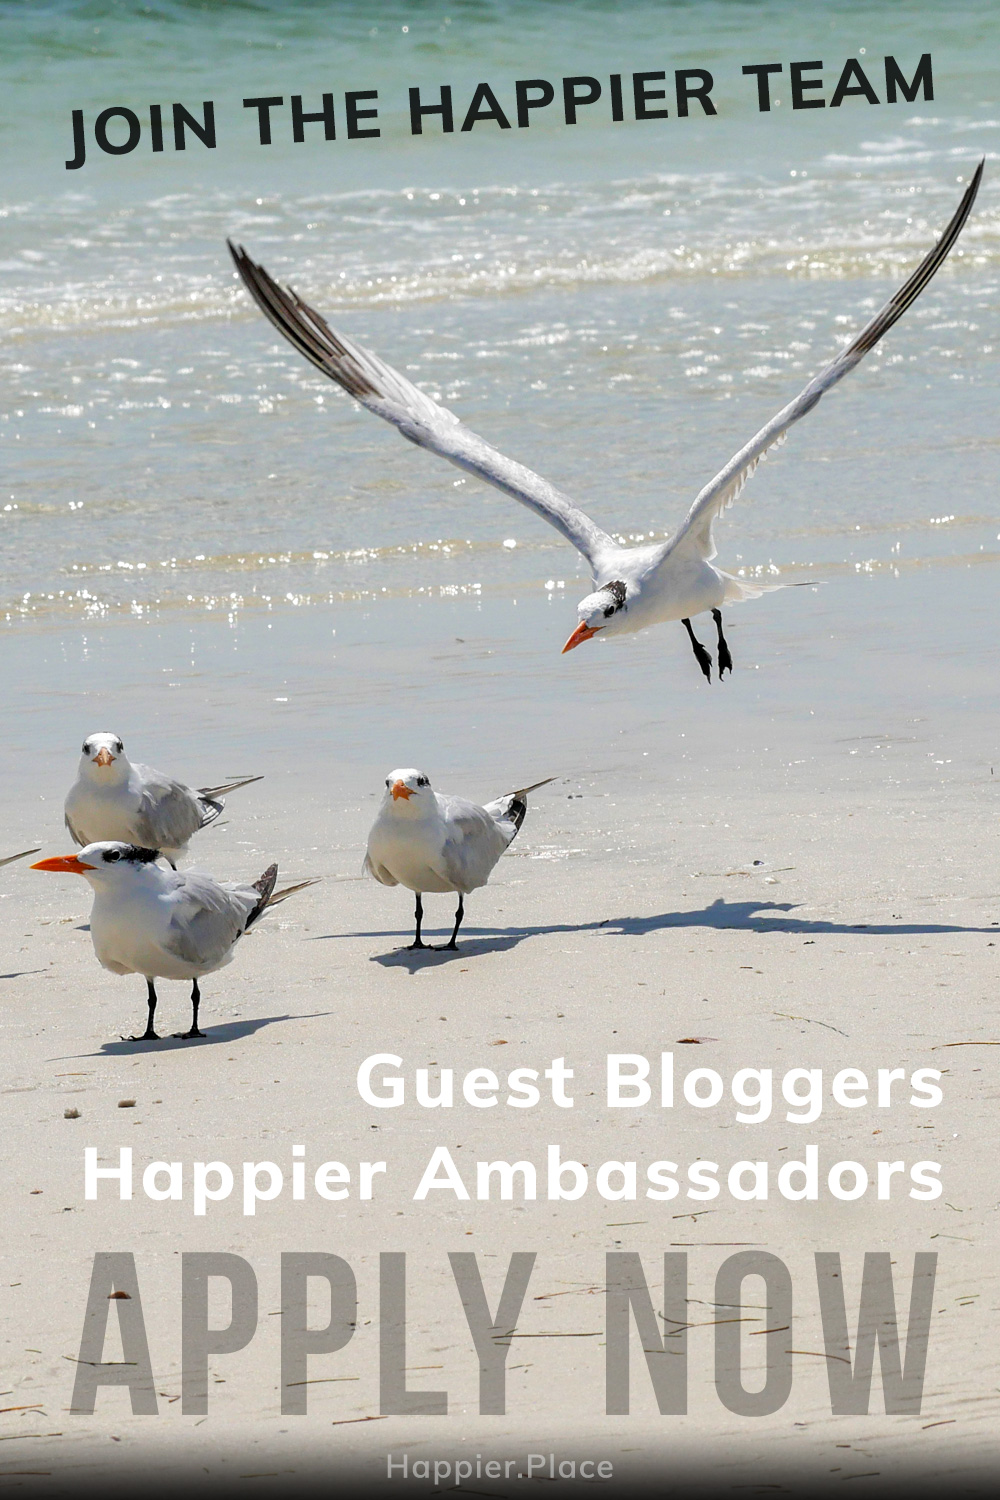 Join the Happier Team: Happier Ambassador and Guest Blogger Programs